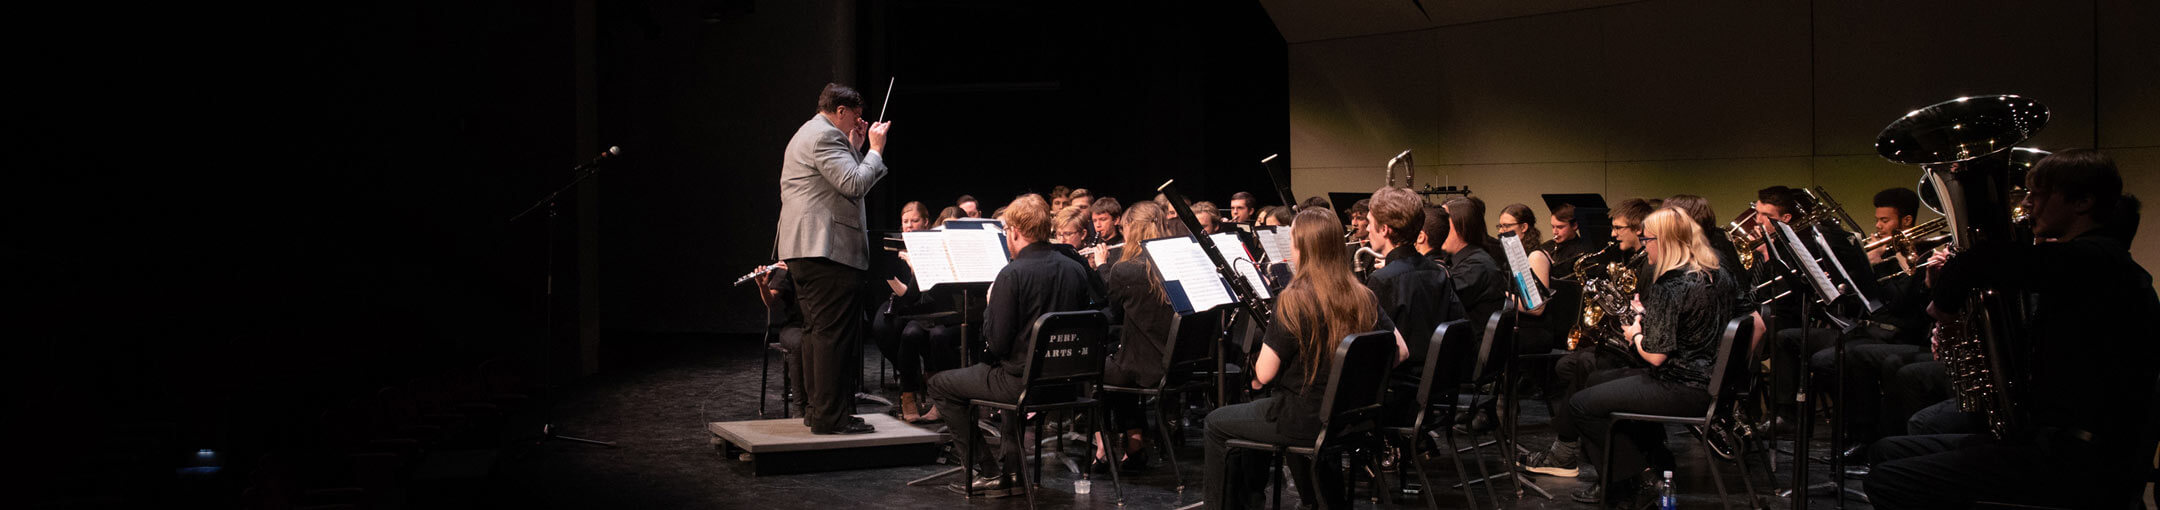 A music director conducting a piece of music played by the RIT Concert Band.